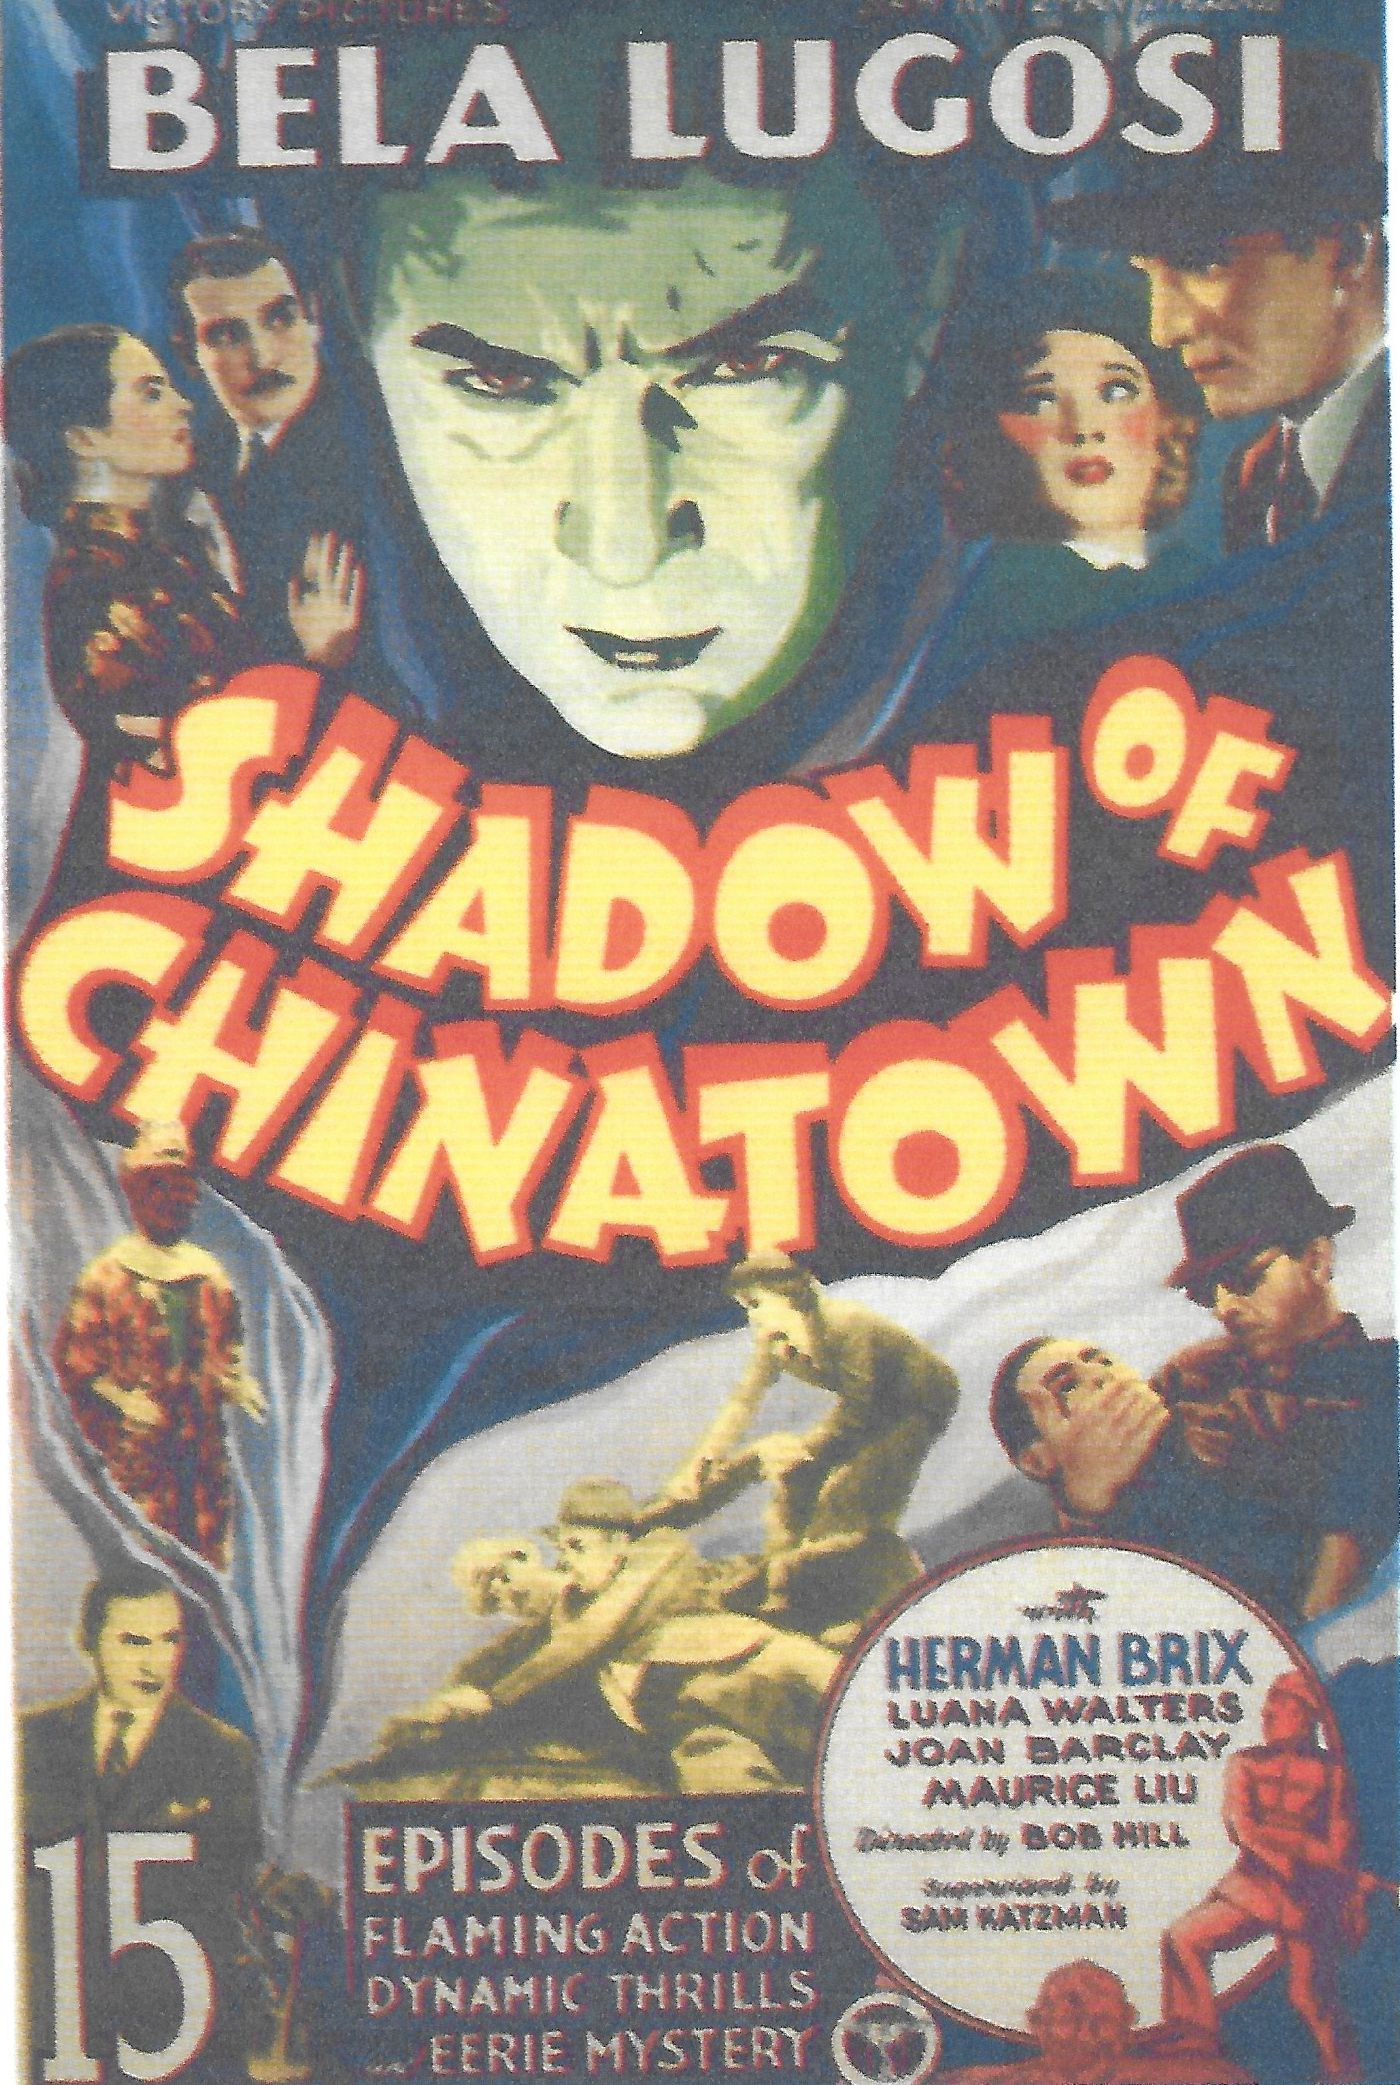 Bela Lugosi, Joan Barclay, Bruce Bennett, Maurice Liu, and Luana Walters in Shadow of Chinatown (1936)